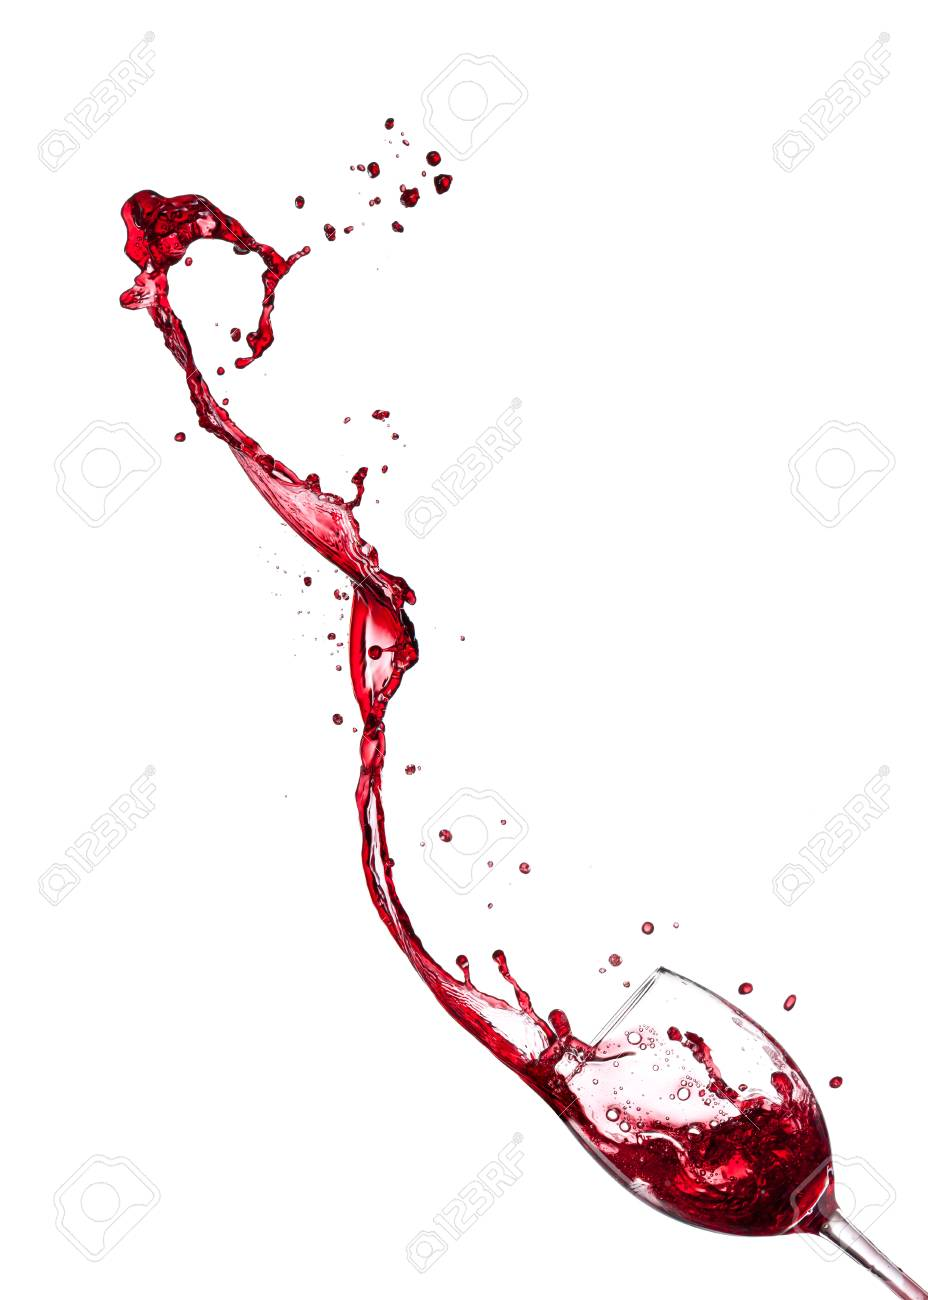 Red wine splashing from glass, isolated on white background. - 98665374